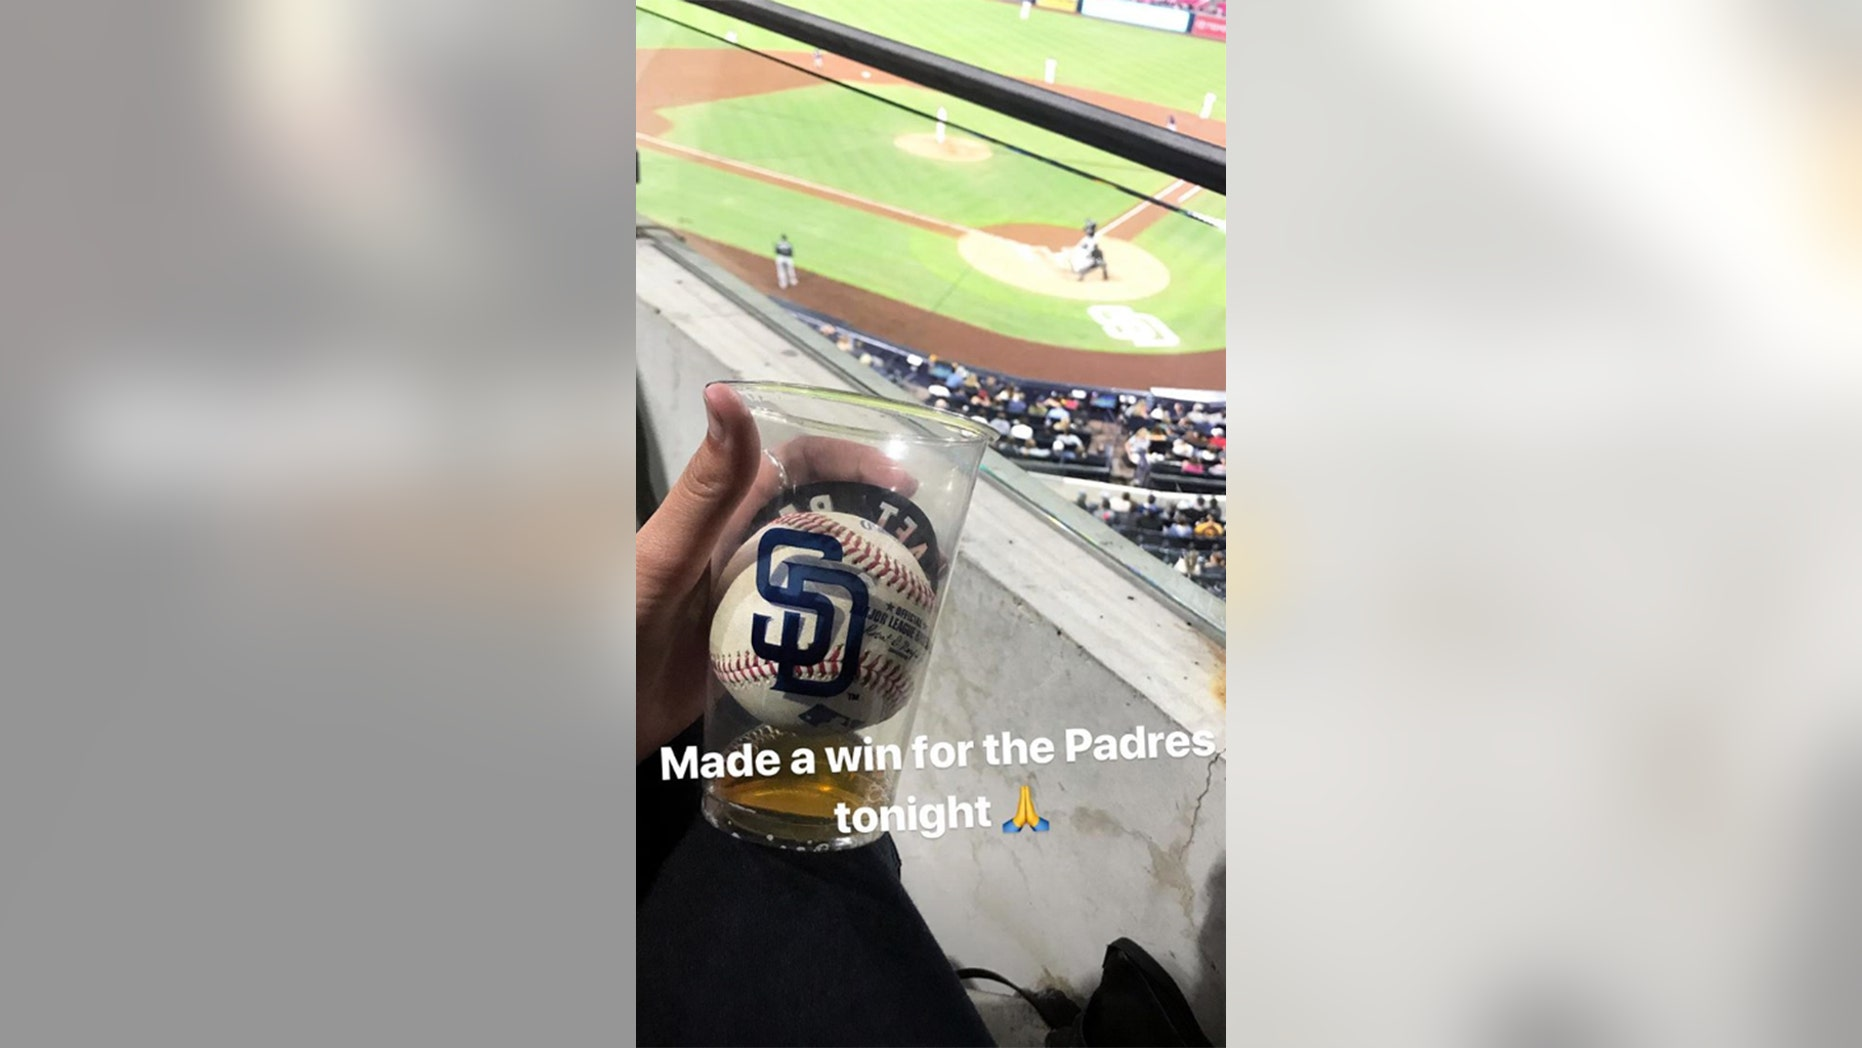 Gabby DiMarco caught the foul ball in her beer cup and then chugged the drink.